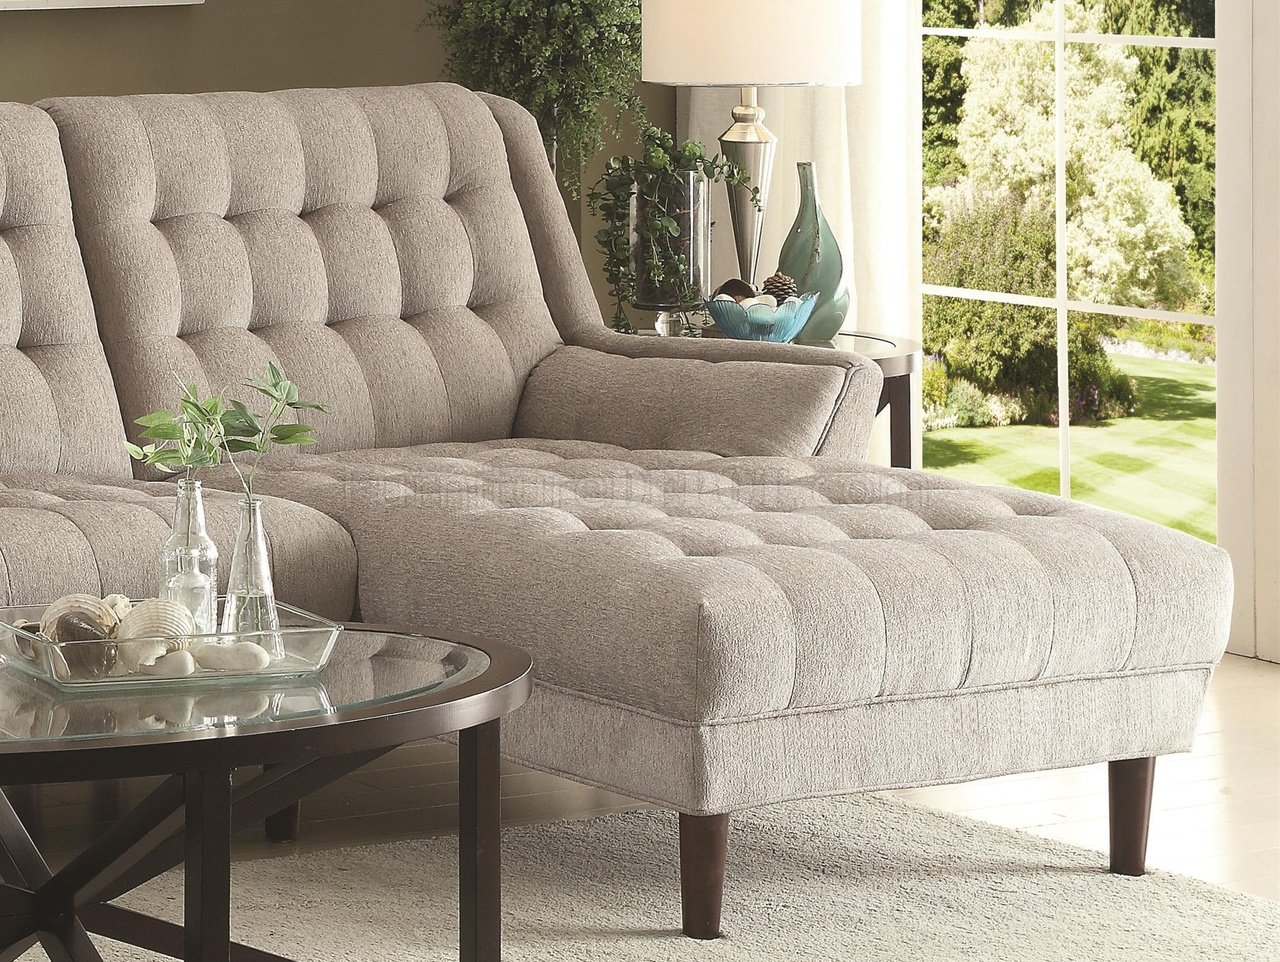 natalia leather and chenille sofa long chair sectional 503777 in dove grey fabric by coaster